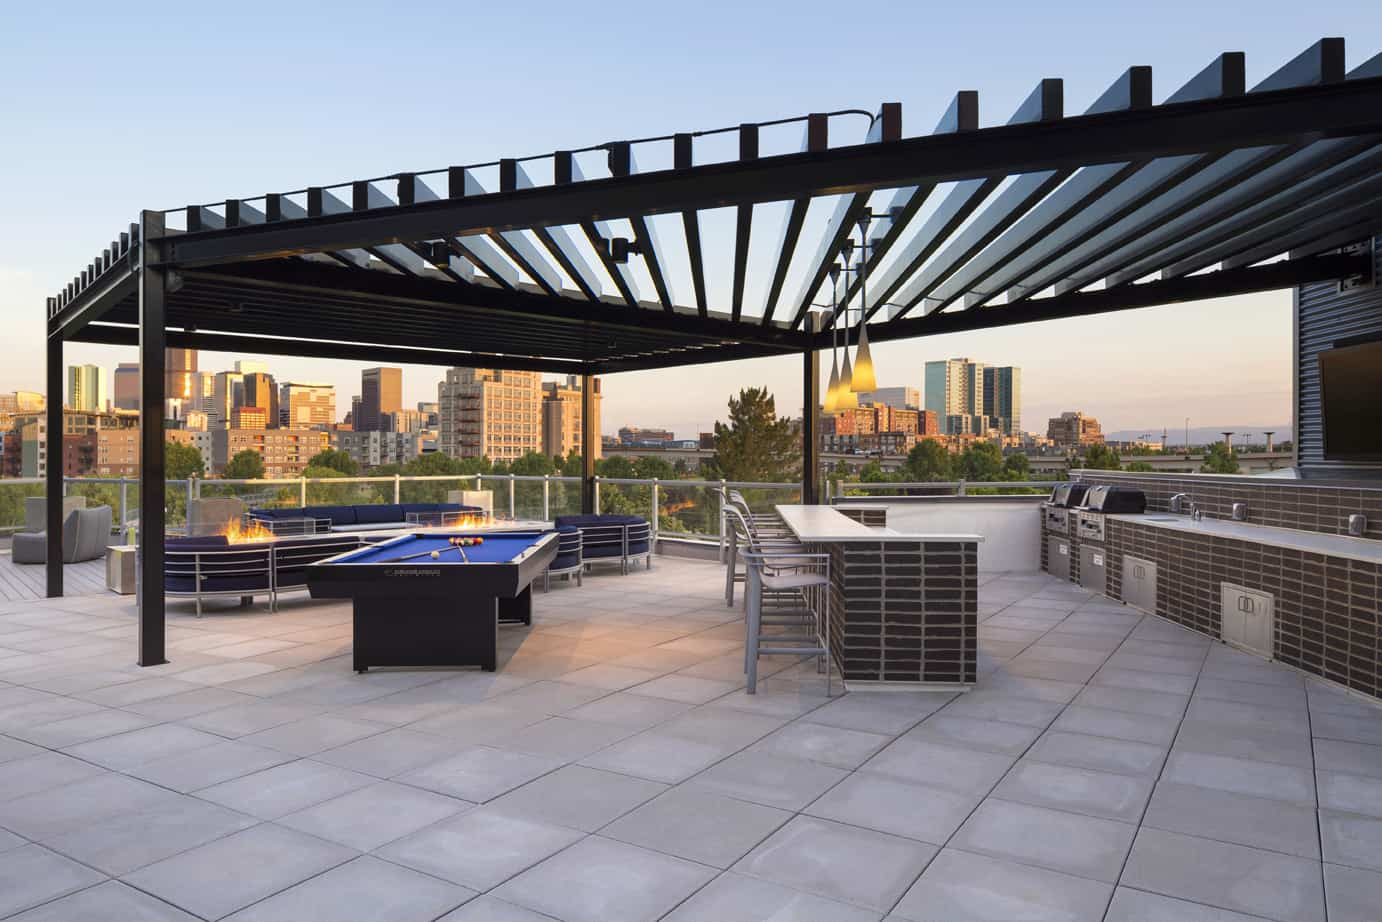 Roof top appointed with patio cover, barbeques, bar top height seating, pool table and couches with fire pit.